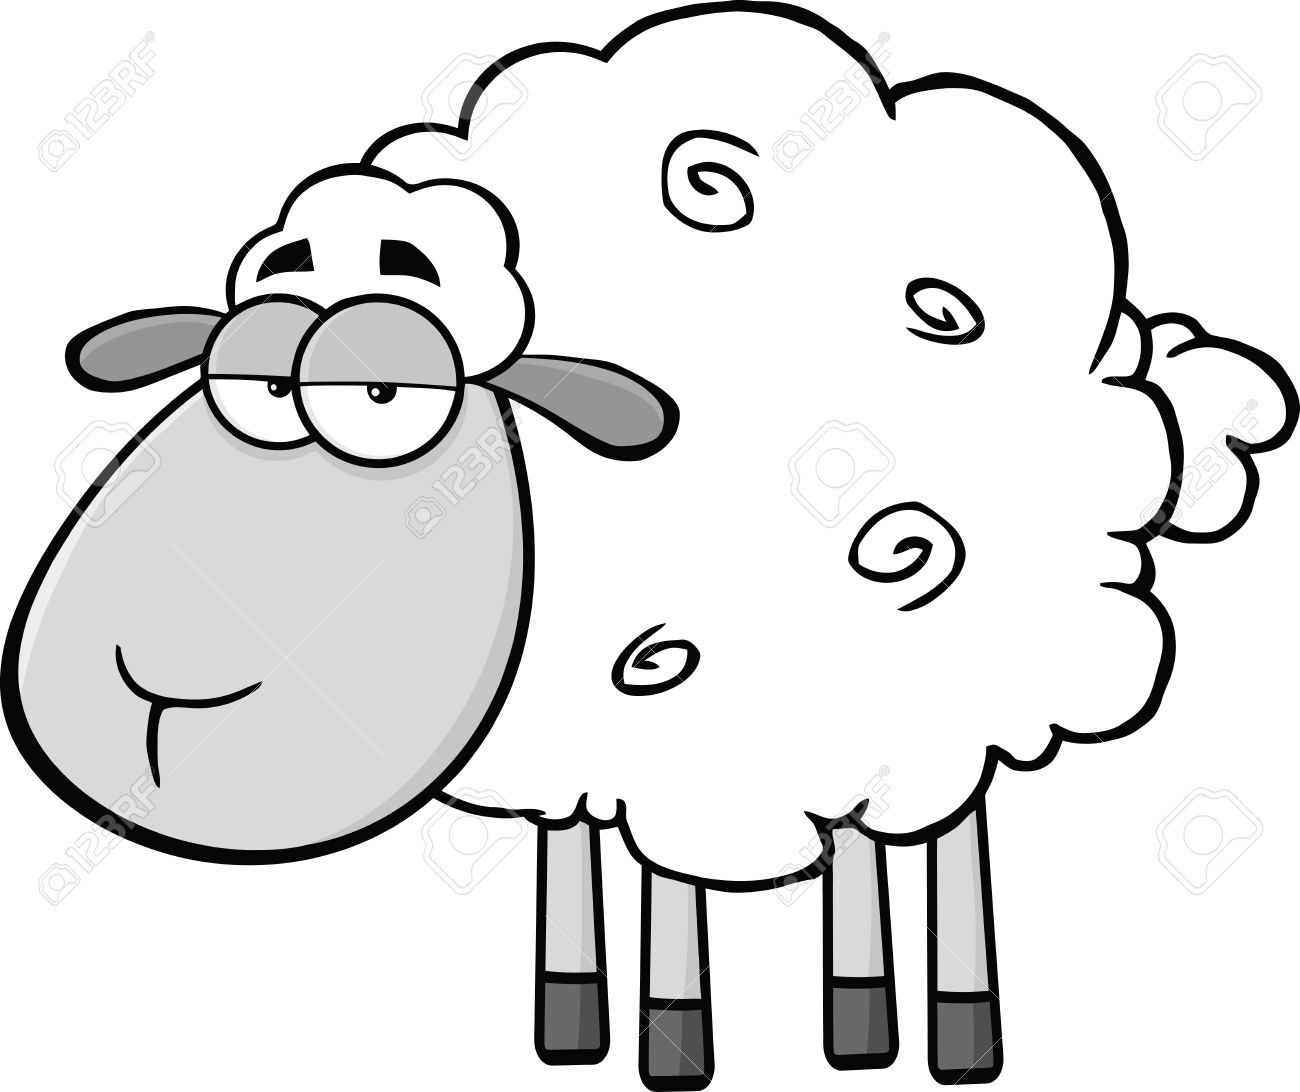 1300x1092 25203631 Cute Sheep Cartoon Mascot Characterin Gray Color